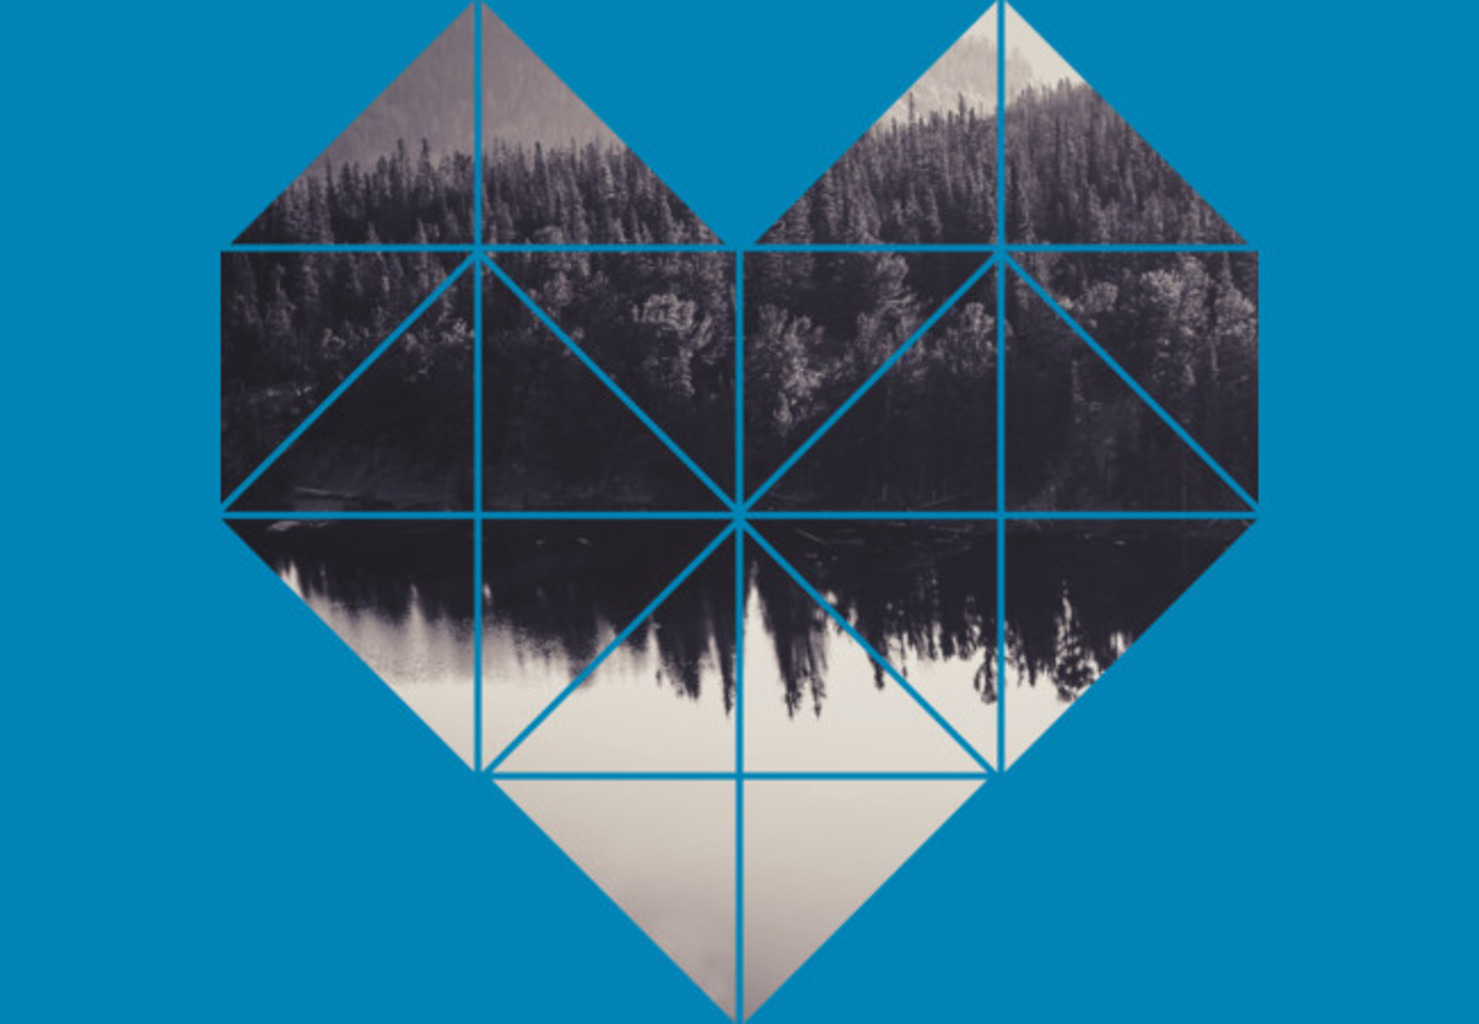 Design by Humans: Geometric art - heart